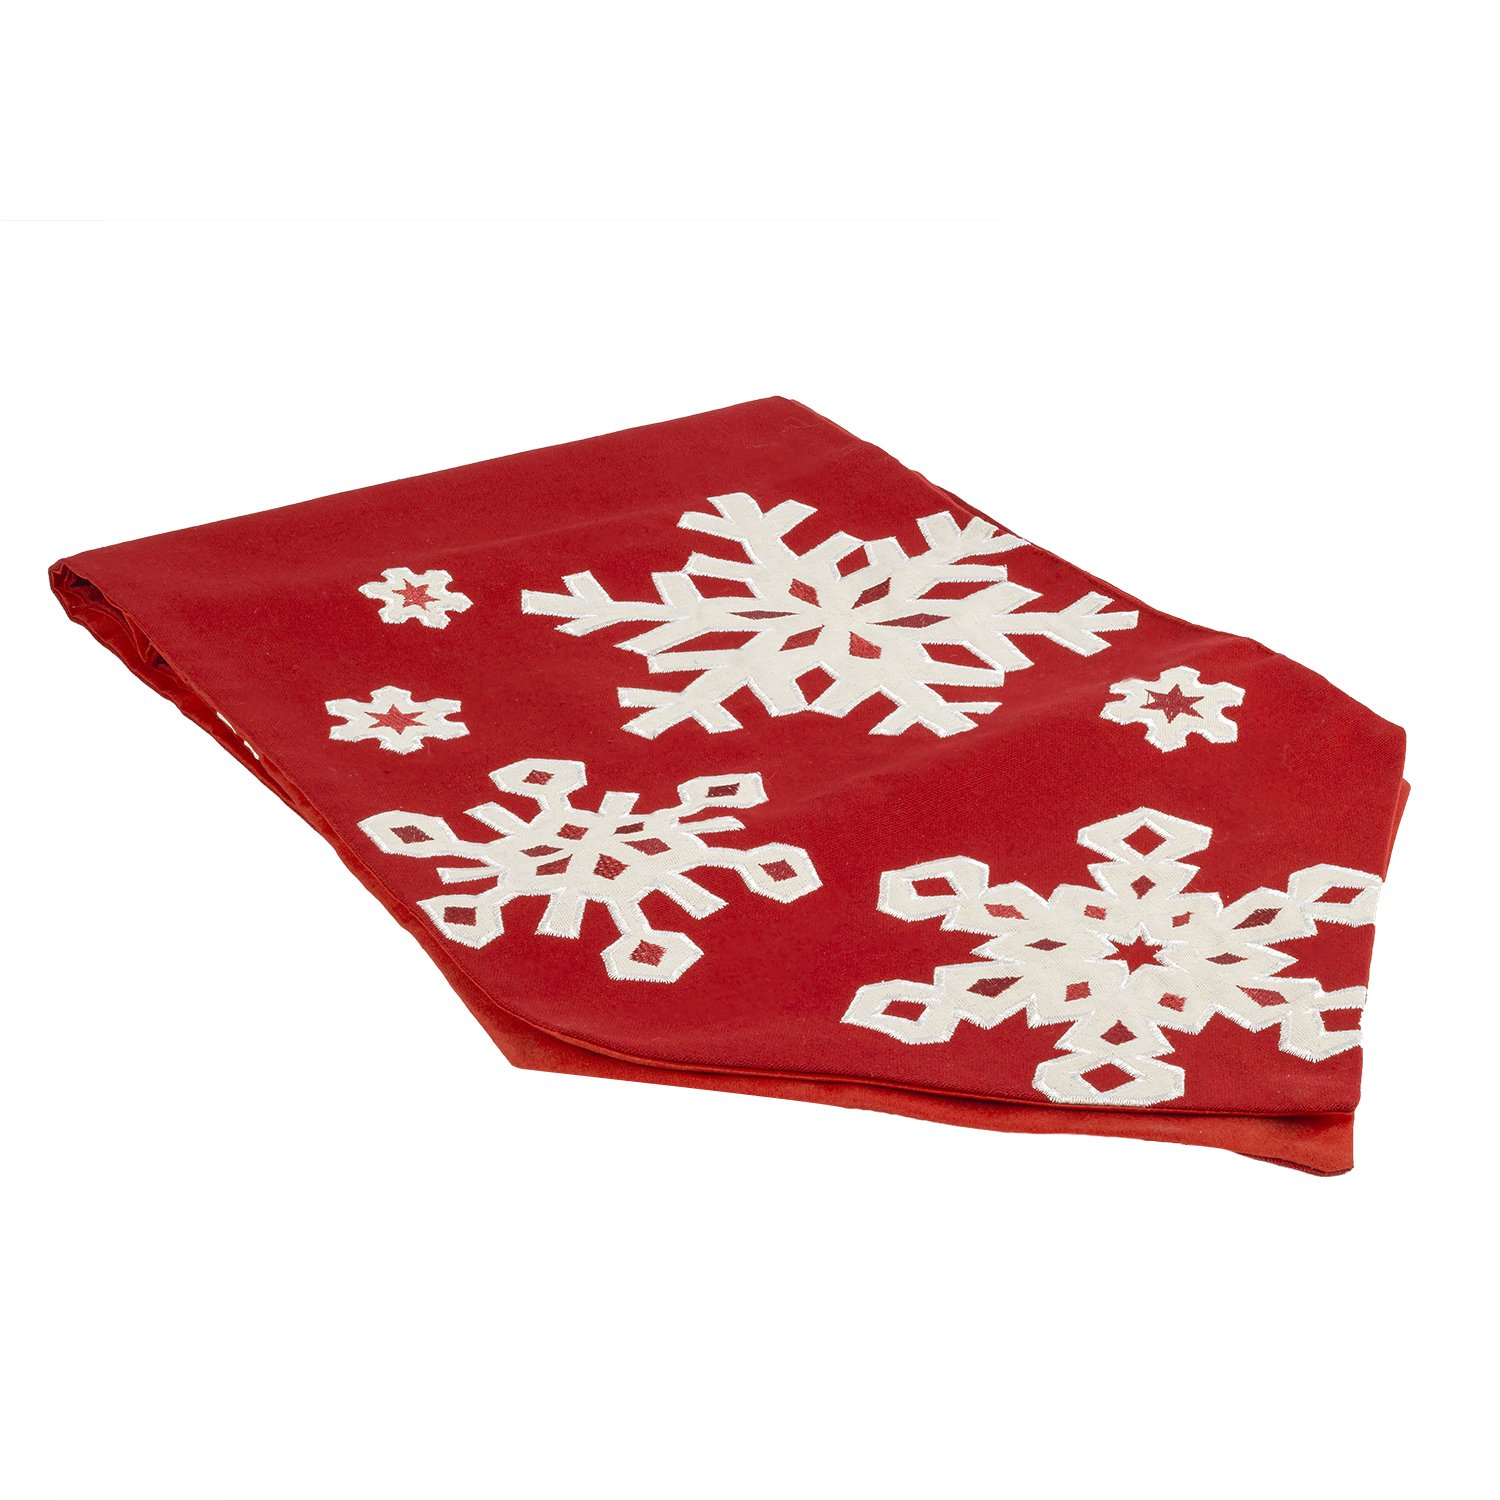 White Appliqued Snowflakes on a Red Christmas Table Runner | ChristmasTablescapeDecor.com